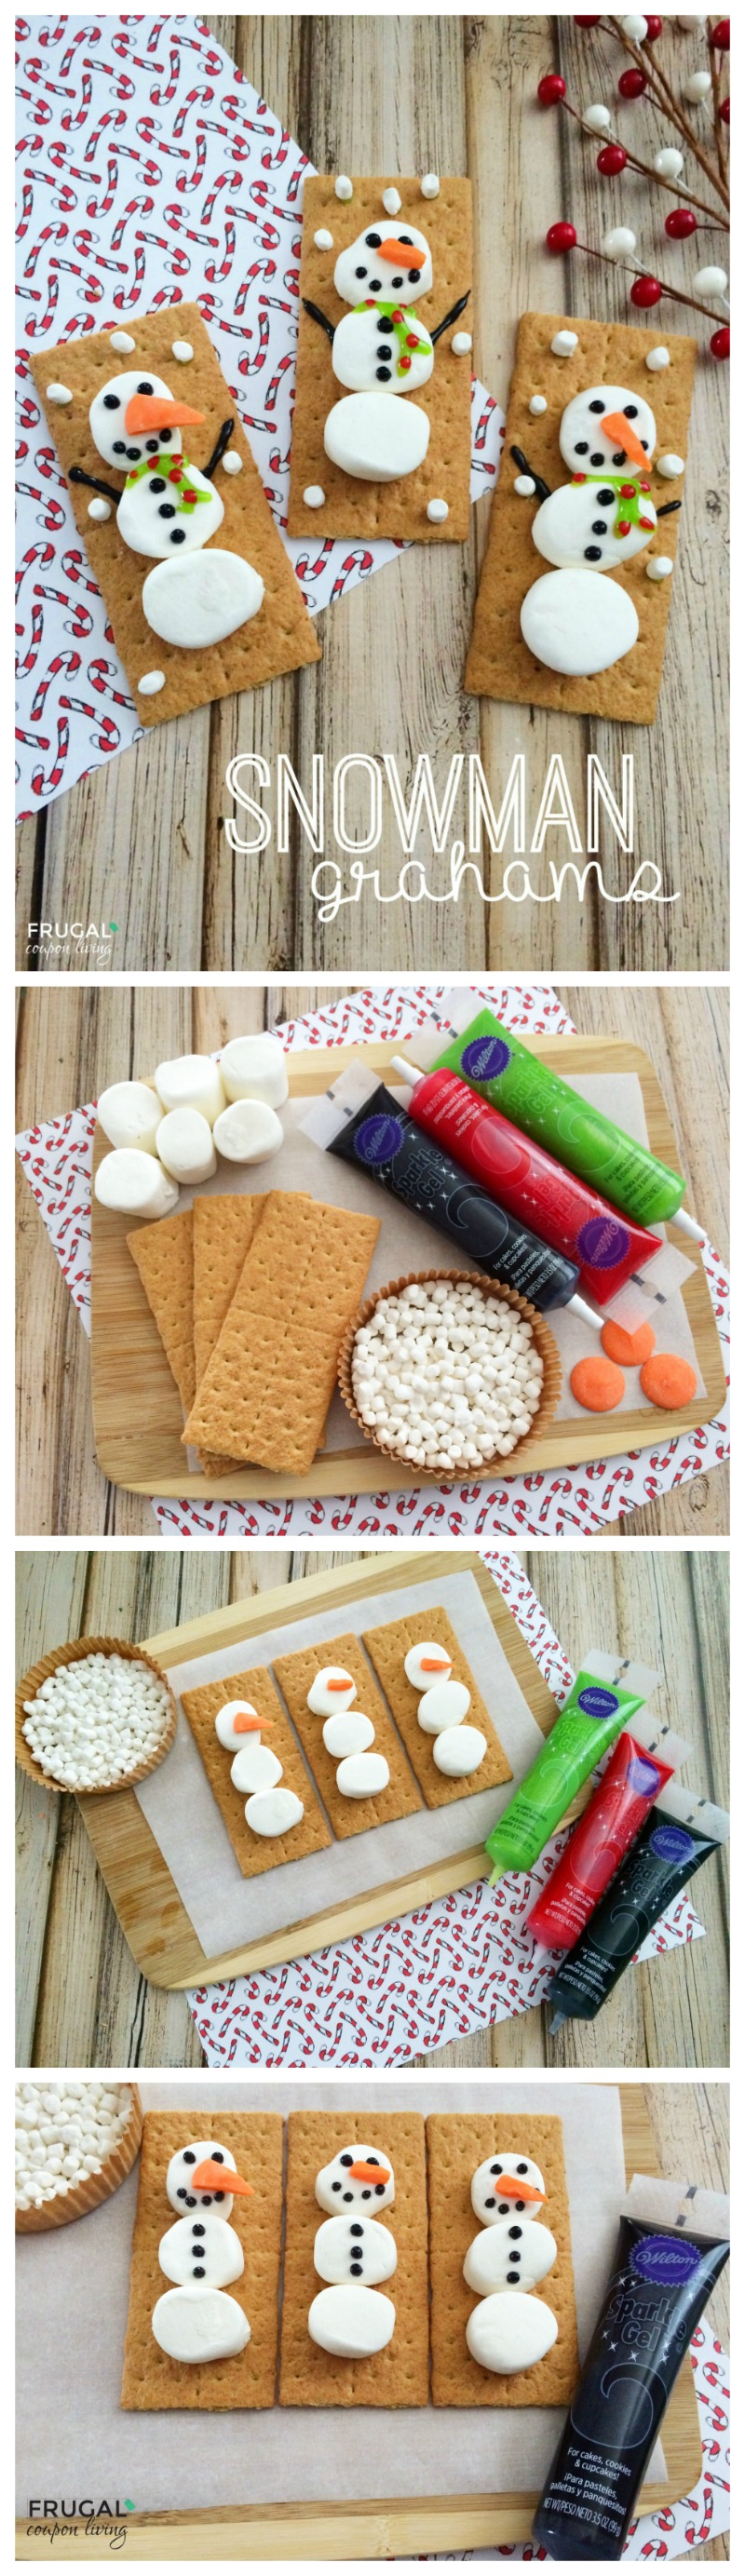 Snowman Grahams Collage on Frugal Coupon Living